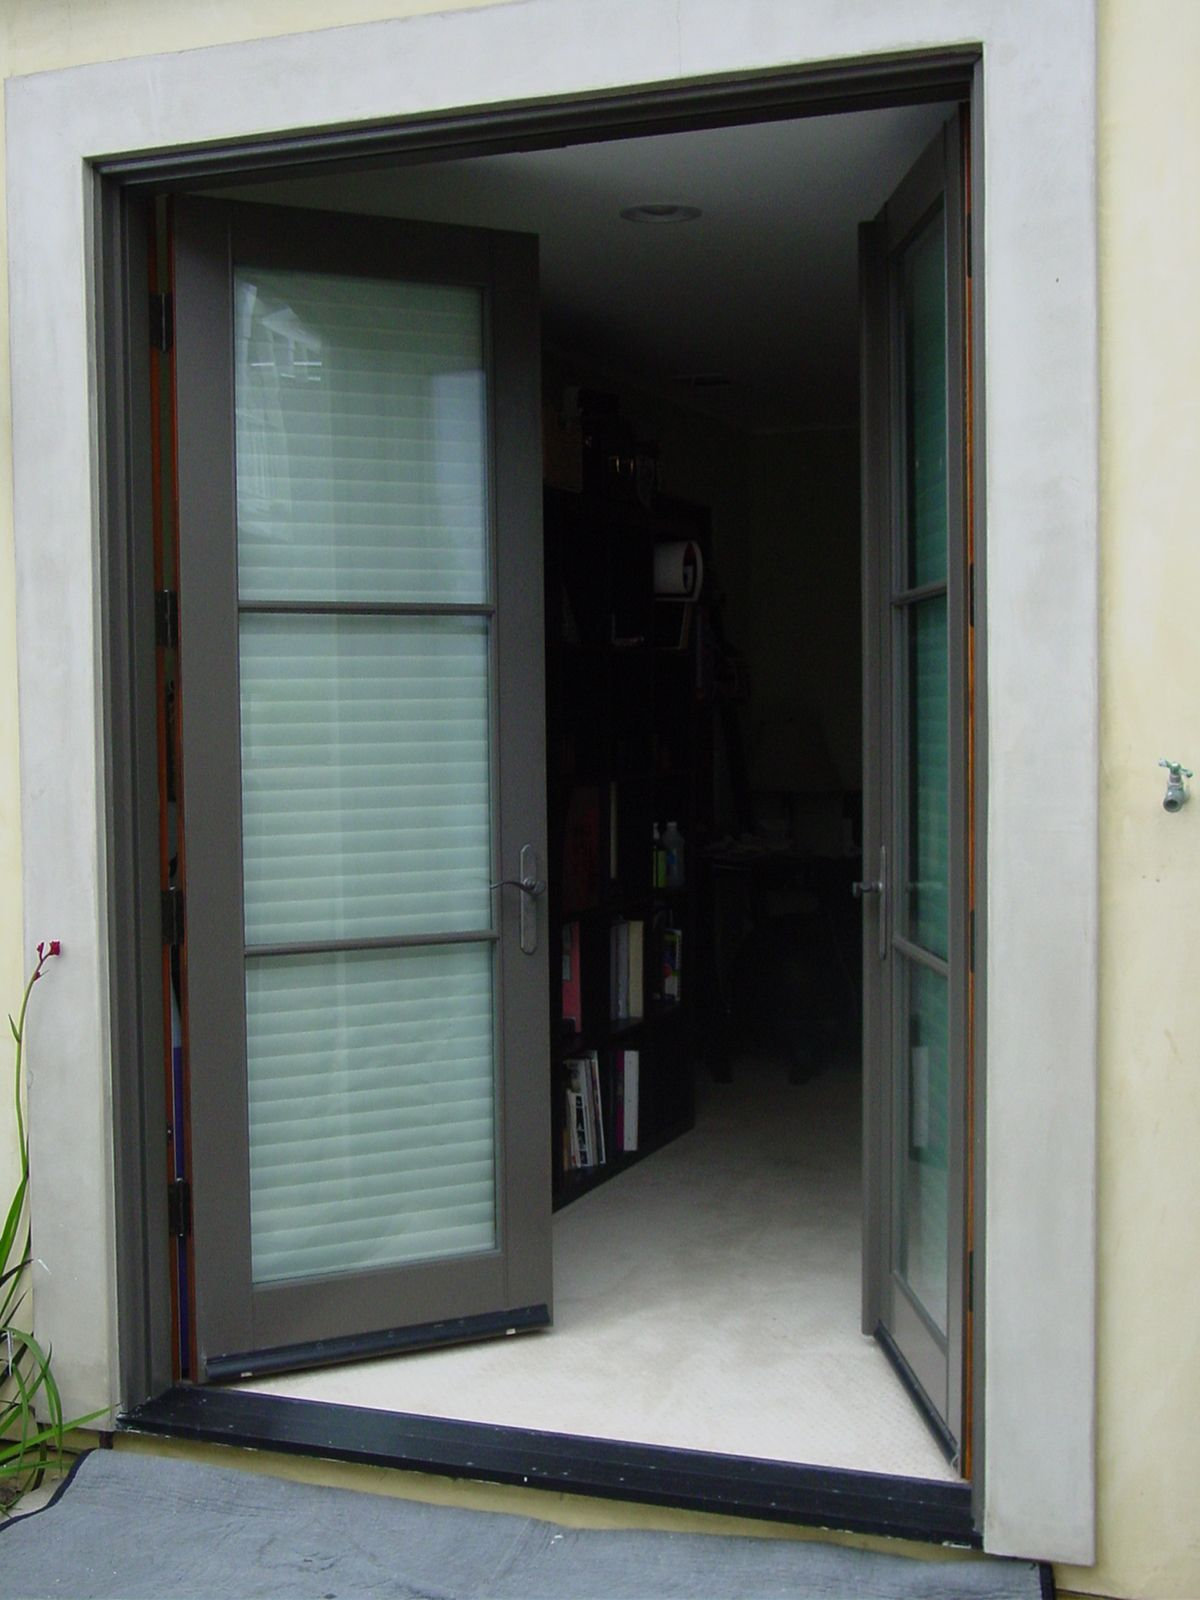 How Big Is 36x84 For A Screen Door : Large french door with phantom screen google search